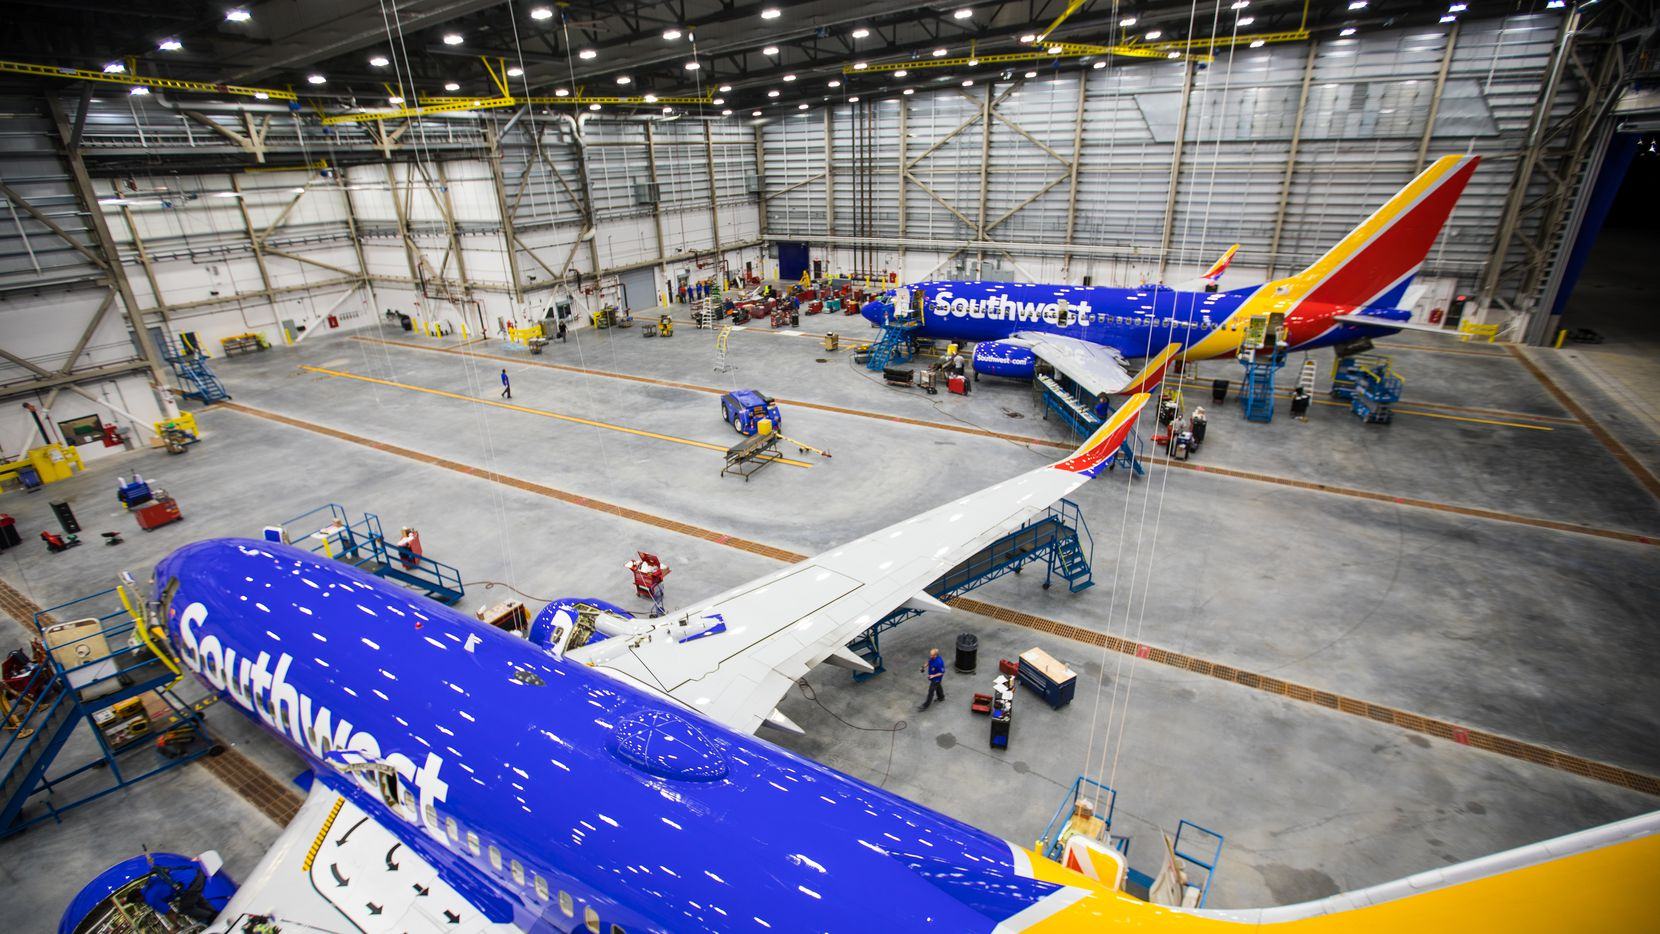 Southwest Airlines' new maintenance hangar at Houston Hobby Airport that opened on Jan. 8, 2020.